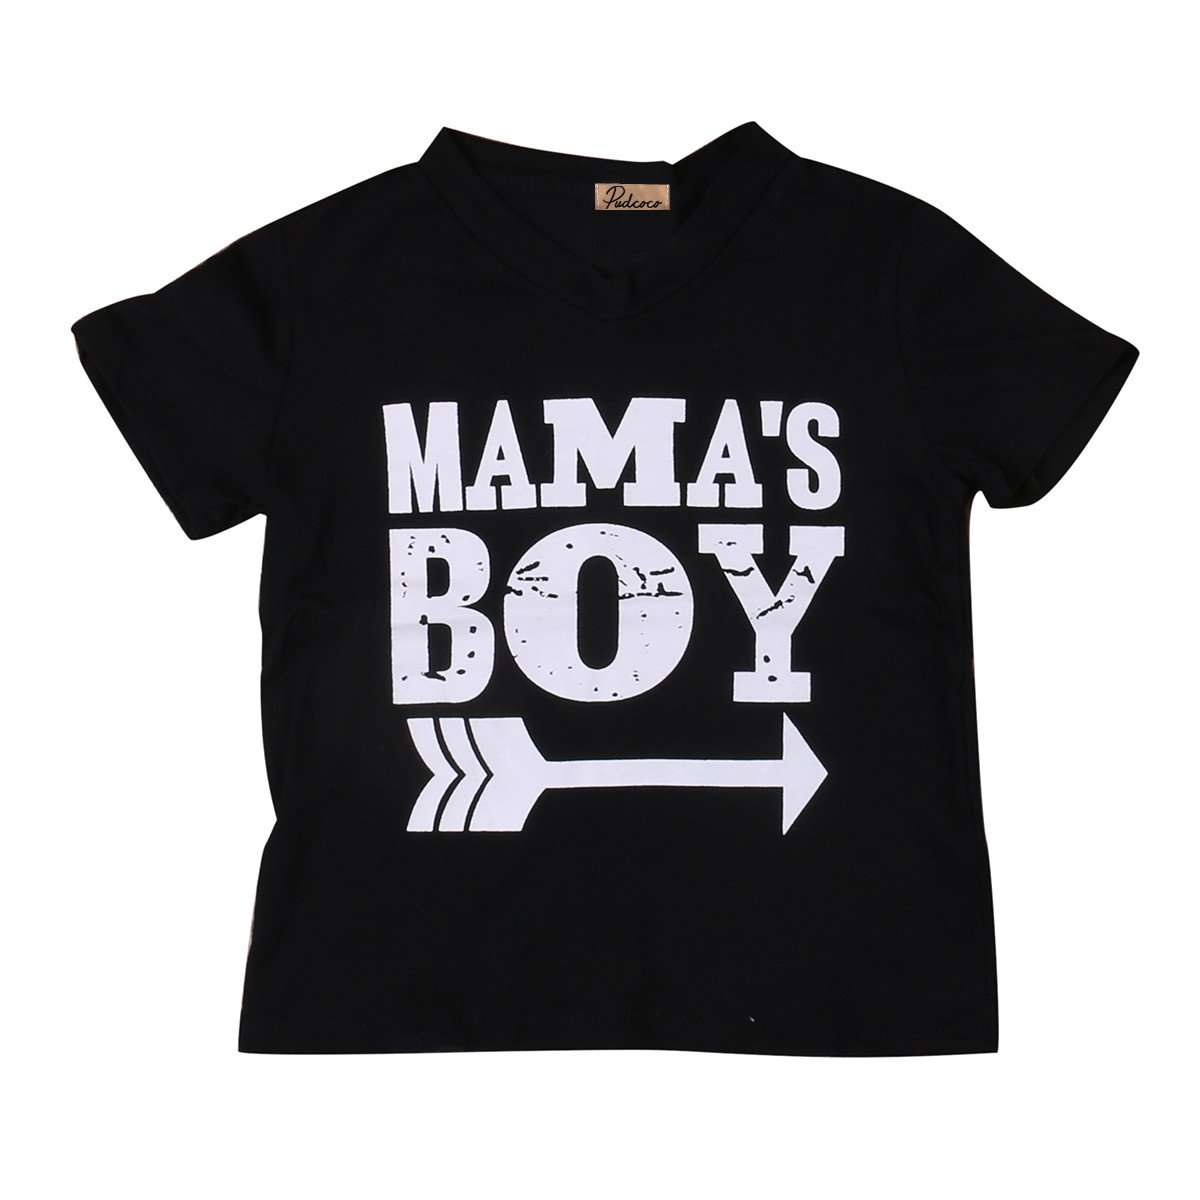 760d4cf2e Mama's Boy Stamp Arrow T-Shirt (0-8 Years) (MRK X. Mama's Boy Stamp Arrow T- Shirt (0-8 Years) (MRK X